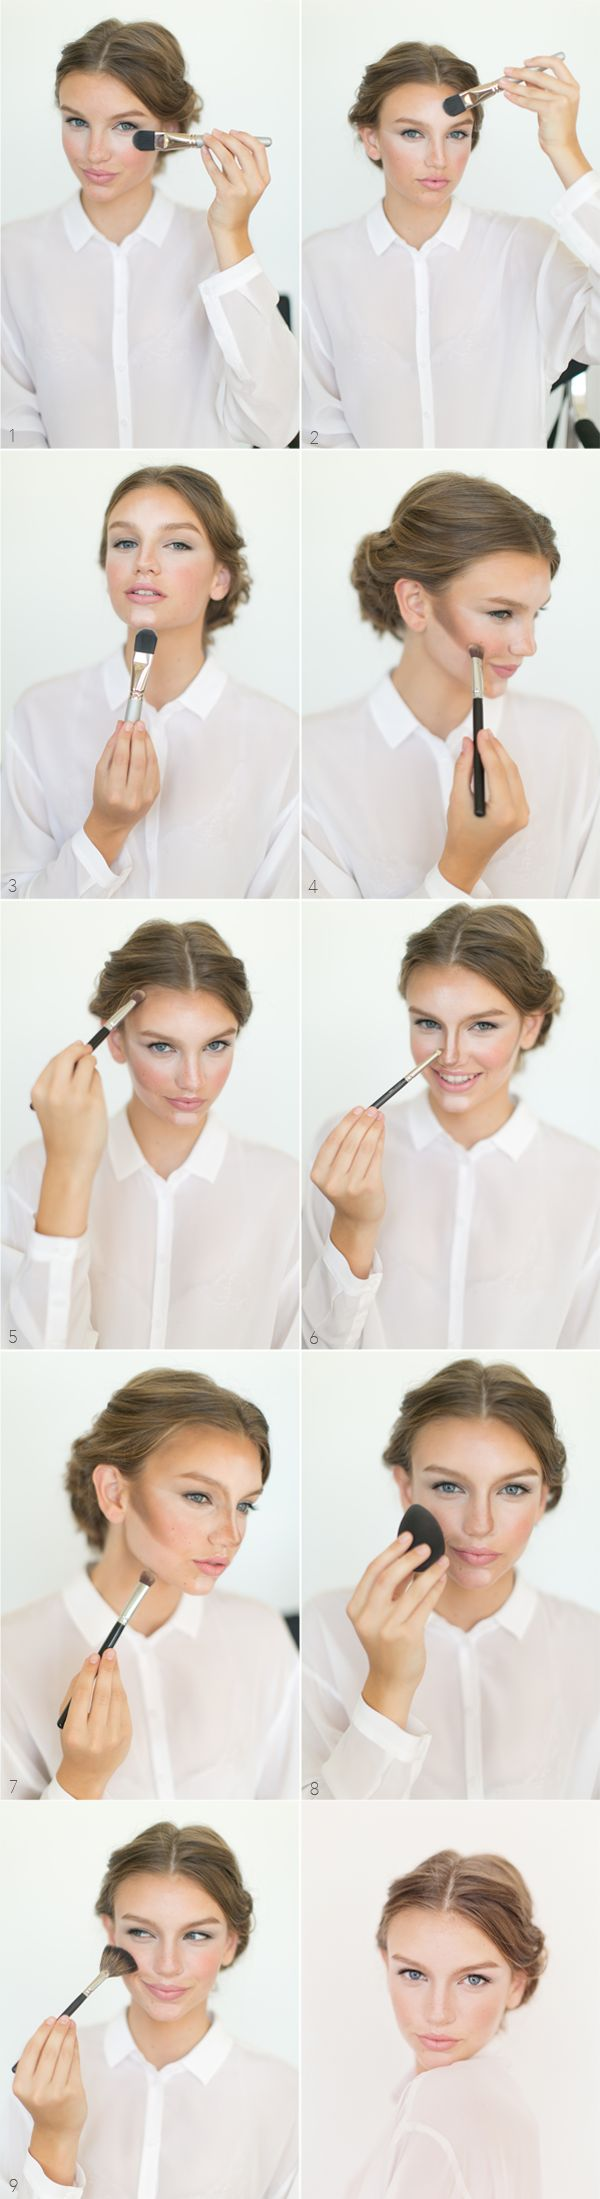 contour + highlight tutorial. amazing!